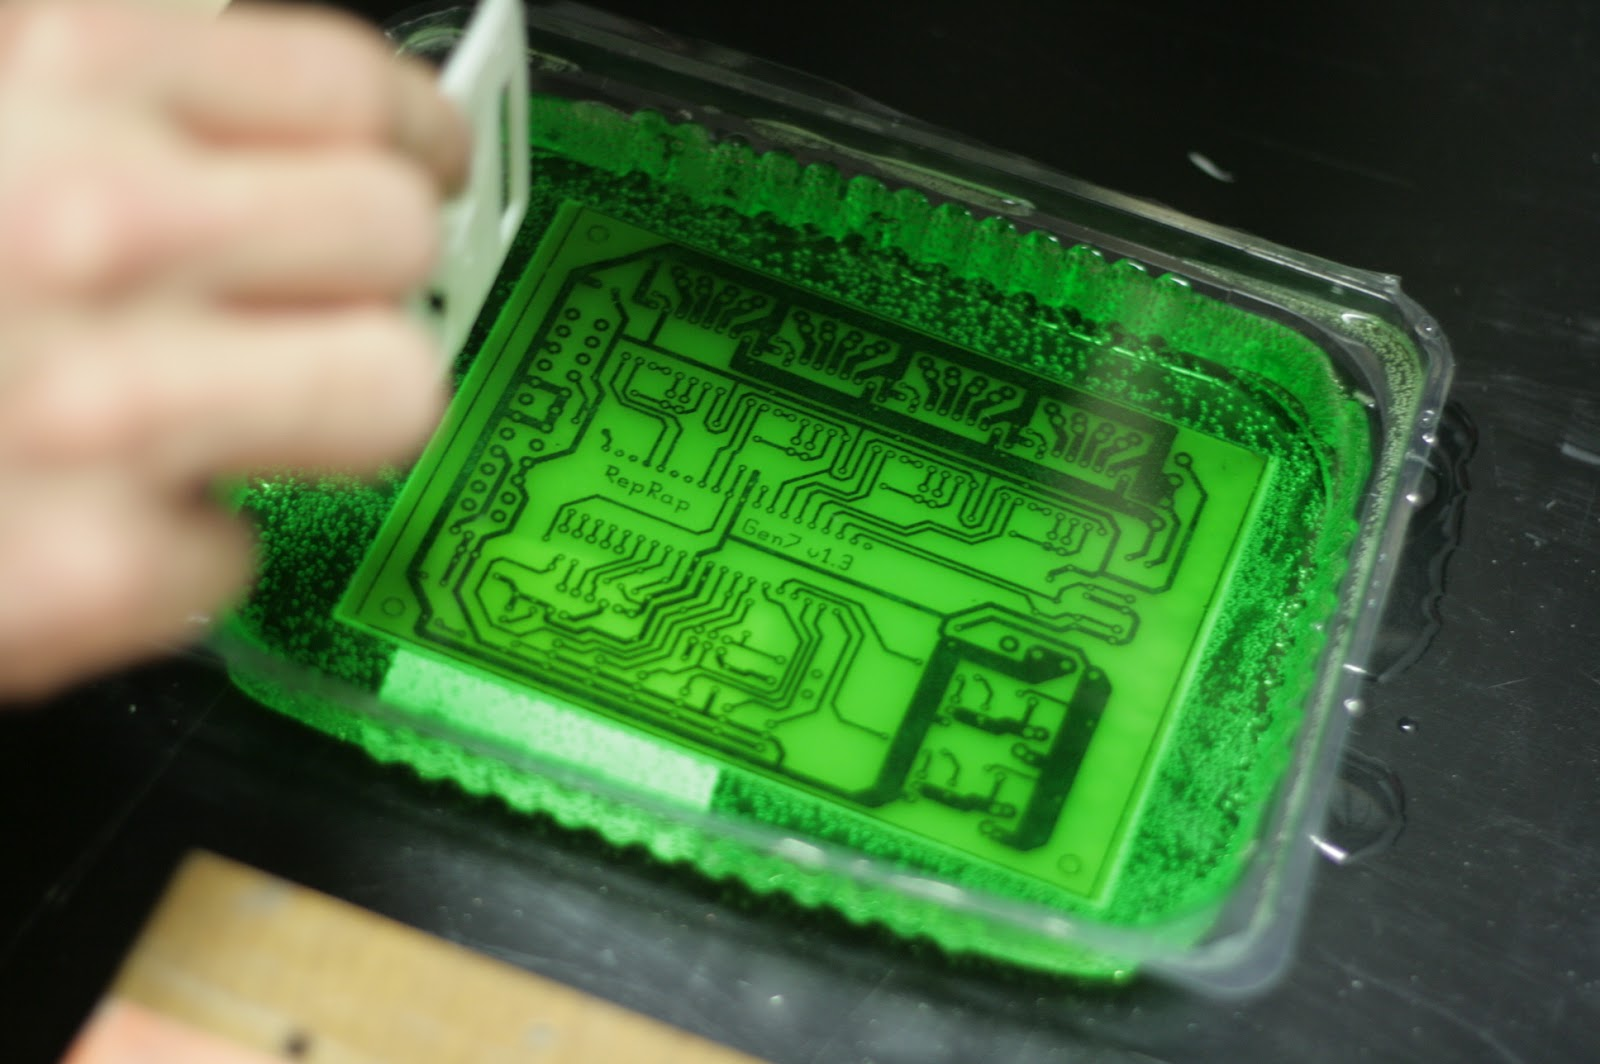 February 2012 Altlab Dit Creativity Aleatoric Blog Archive Circuitbending Tutorial Today